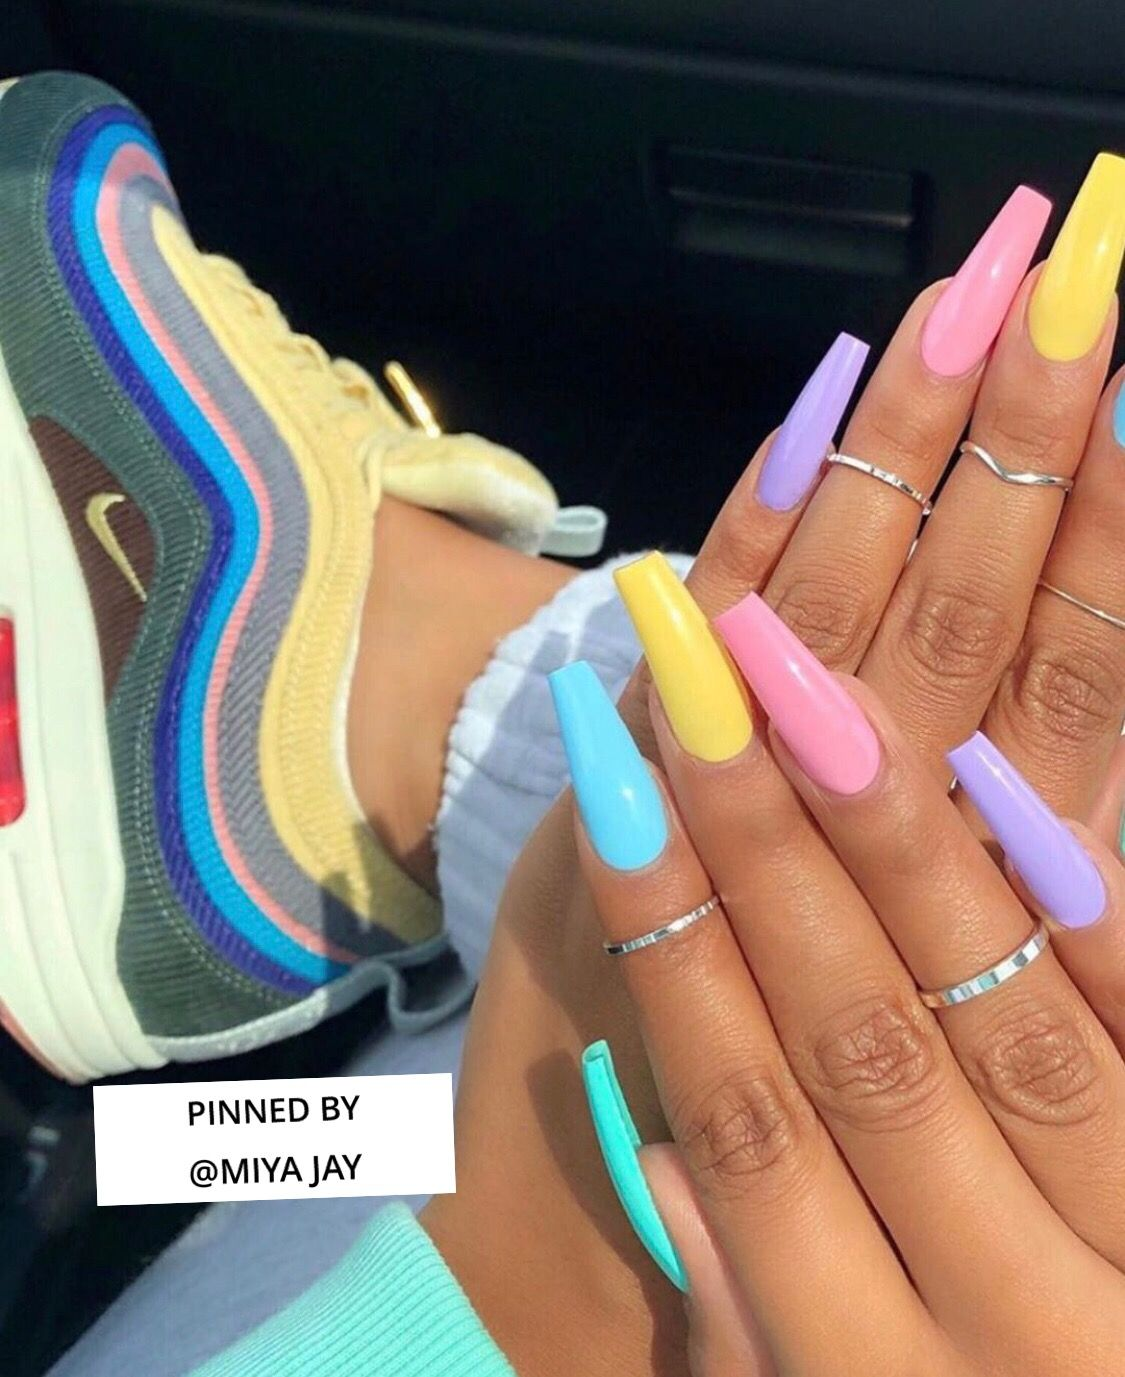 Pastel Clean Follow Me On Pinterest Miya Jay Instagram So Sweetandstuff In 2020 Best Acrylic Nails Summer Acrylic Nails Coffin Nails Designs